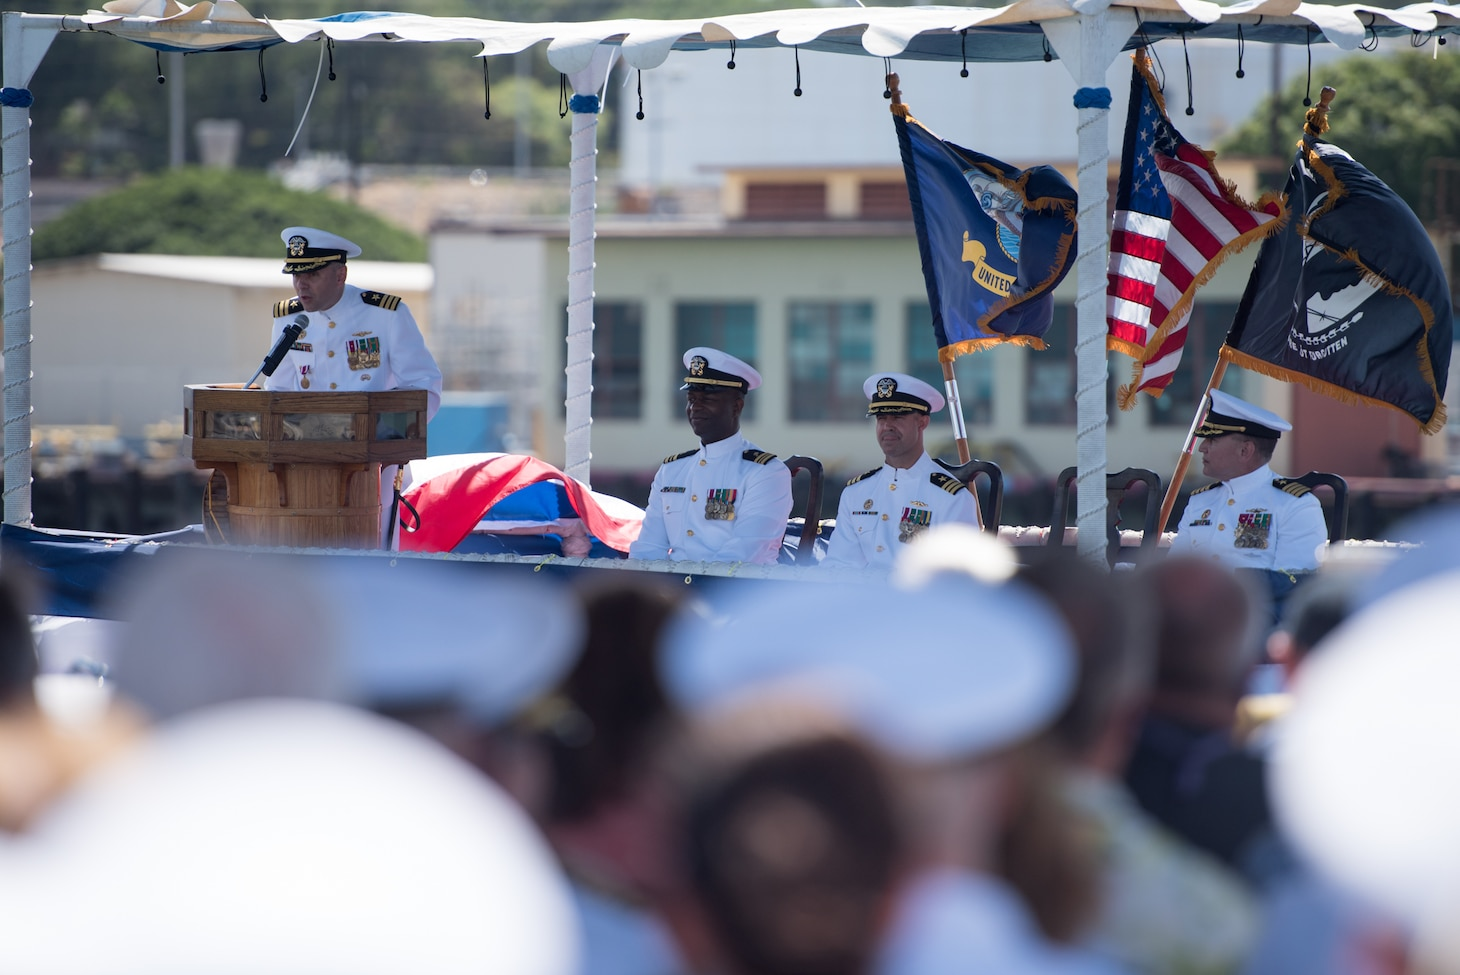 PEARL HARBOR (August 3, 2018) - Cmdr. Dave Edgerton, outgoing commanding officer of Los Angles-class fast-attack submarine USS Columbia (SSN 771) delivers remarks during the change of command ceremony on the historic submarine piers at Joint Base Pearl Harbor-Hickam, August 3. Cmdr. Tyler Forrest relieved Cmdr. Dave Edgerton as Columbia's commanding officer. (U.S. Navy photo by Mass Communication Specialist 1st Class Daniel Hinton)